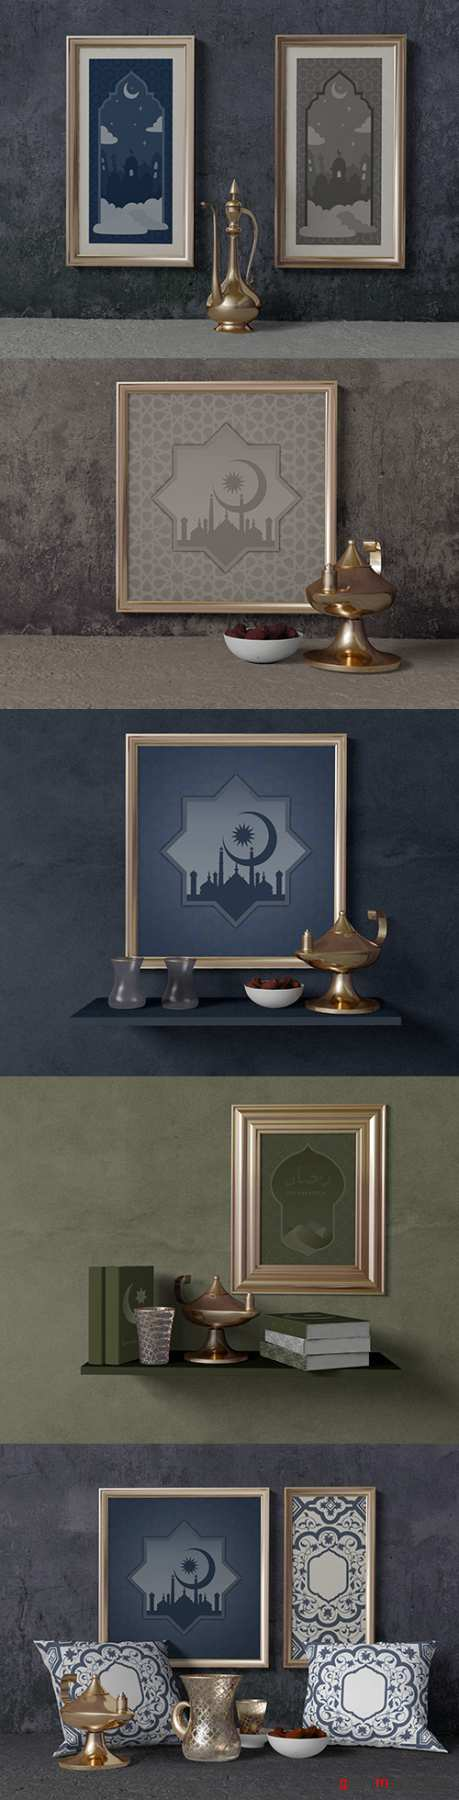 Ramadan composition with frame and cushions template 2